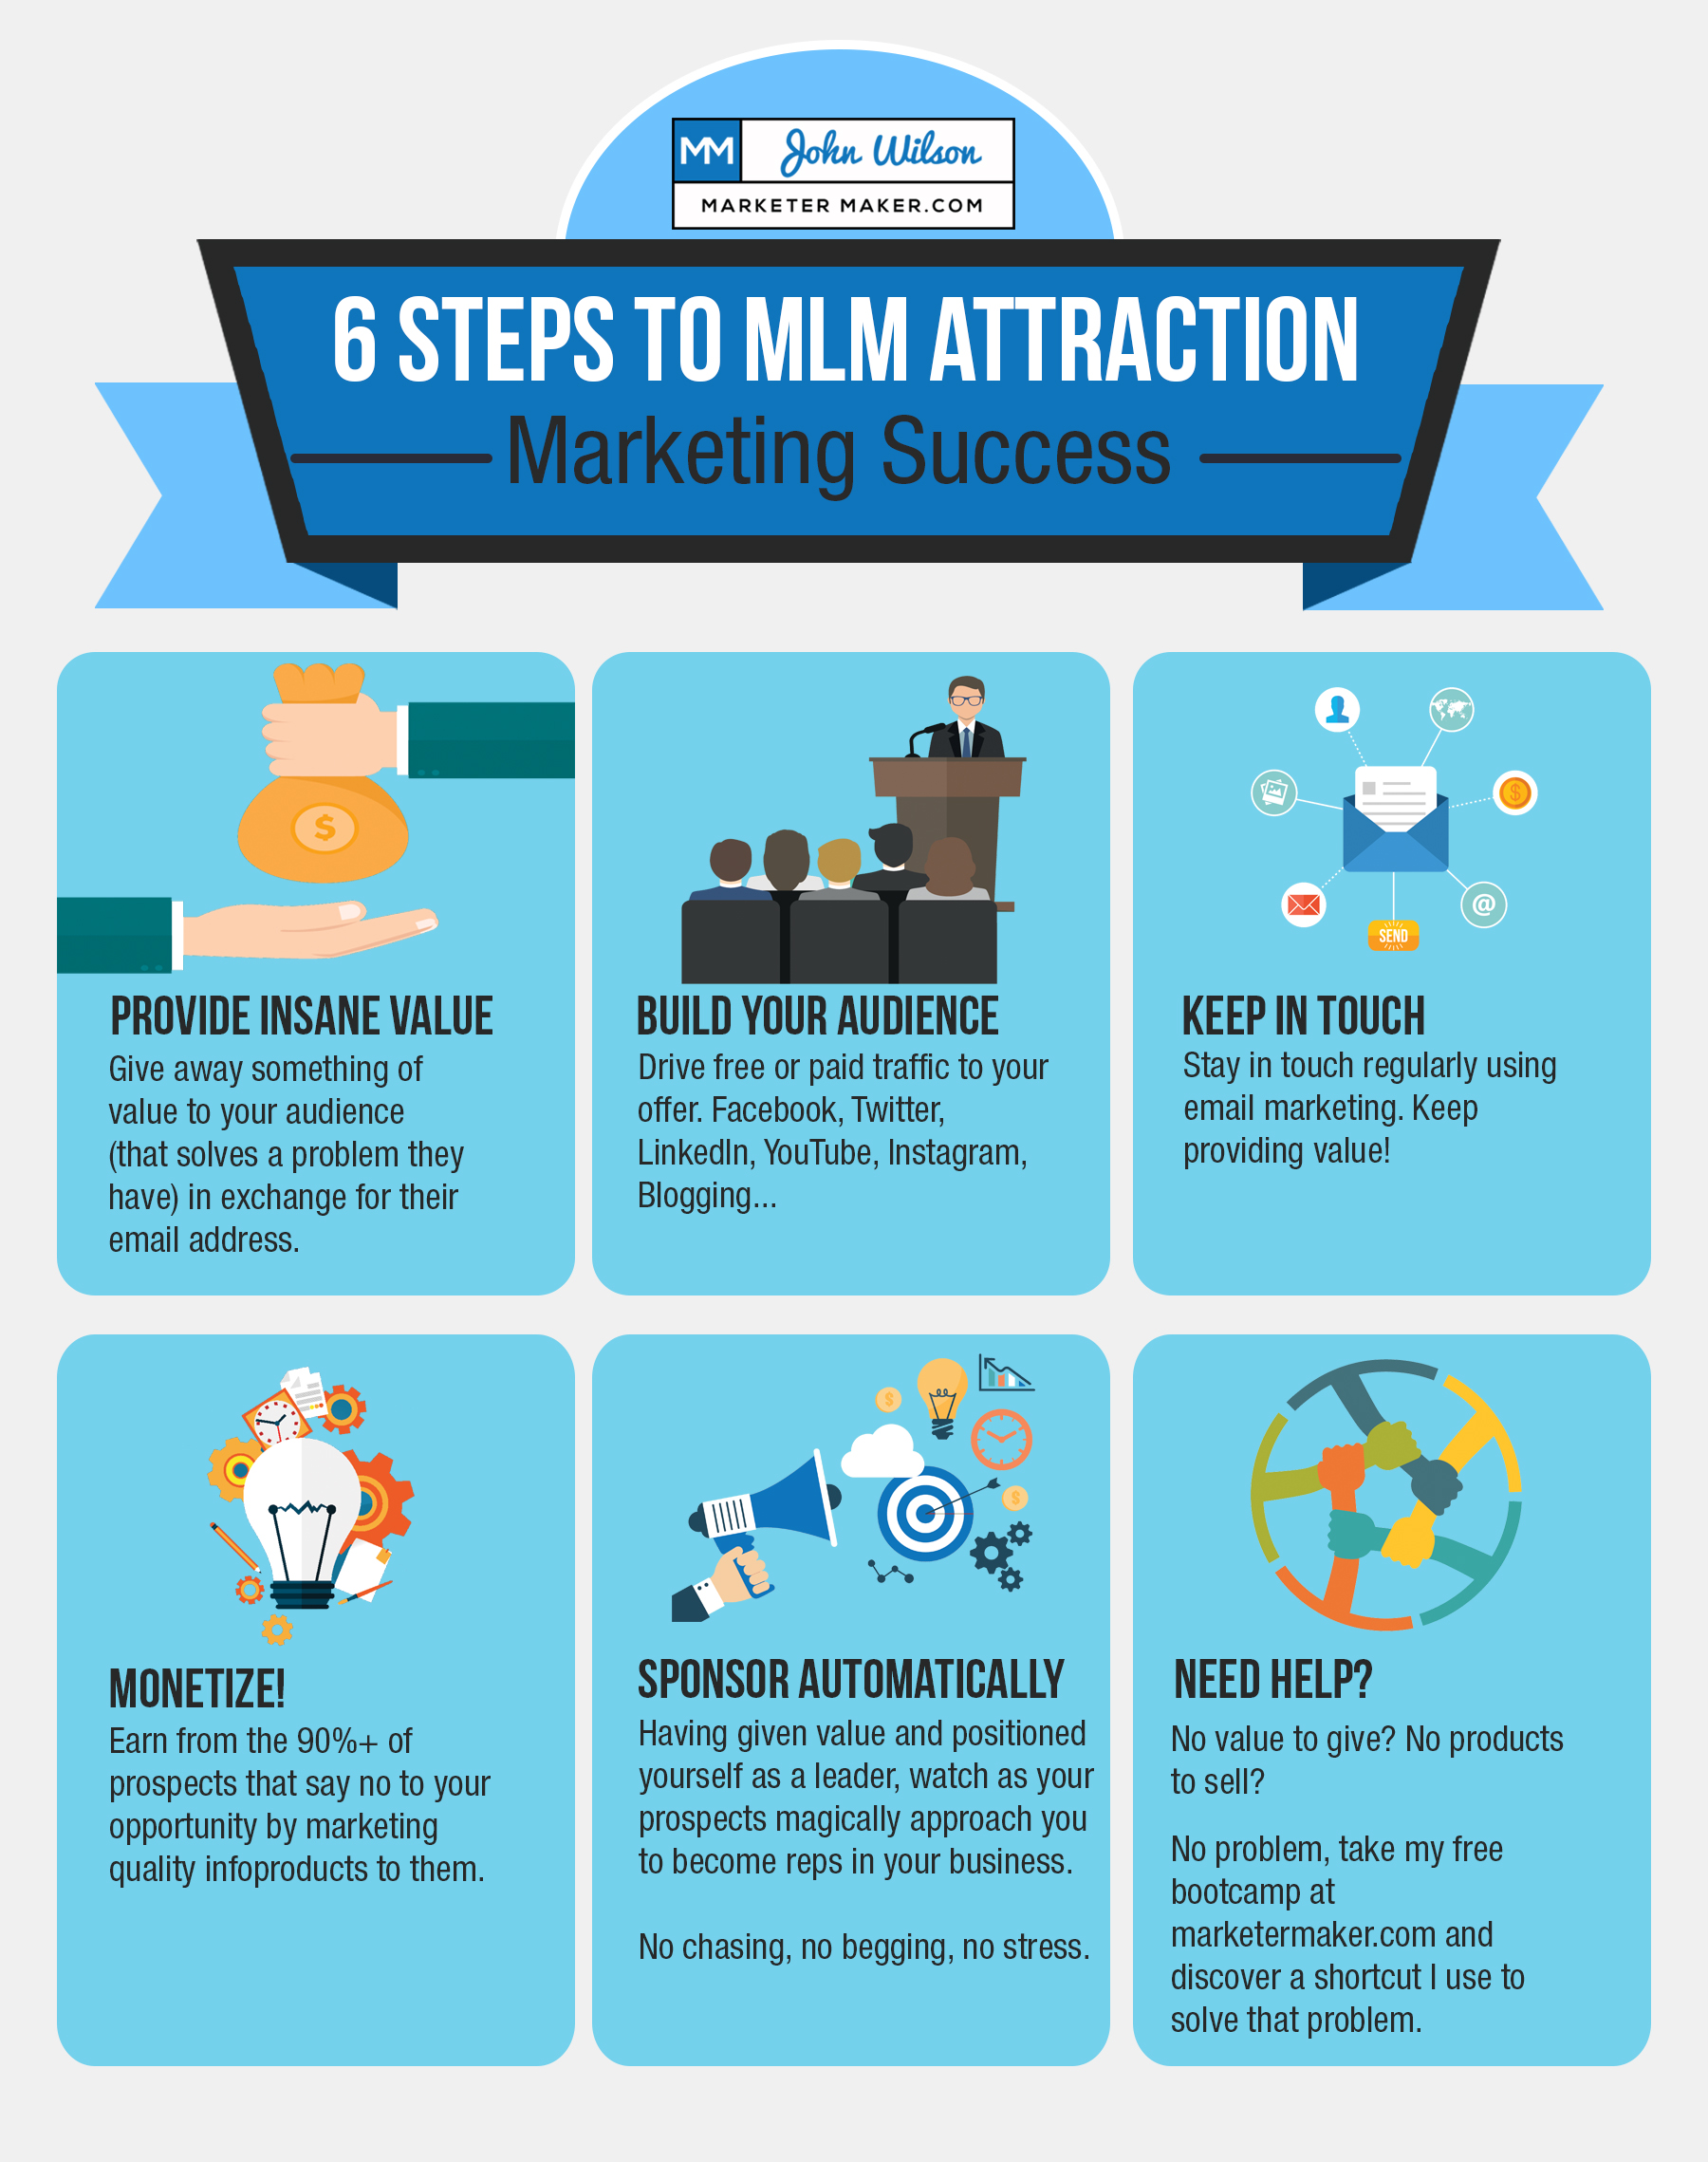 MLM Attraction Marketing Infographic